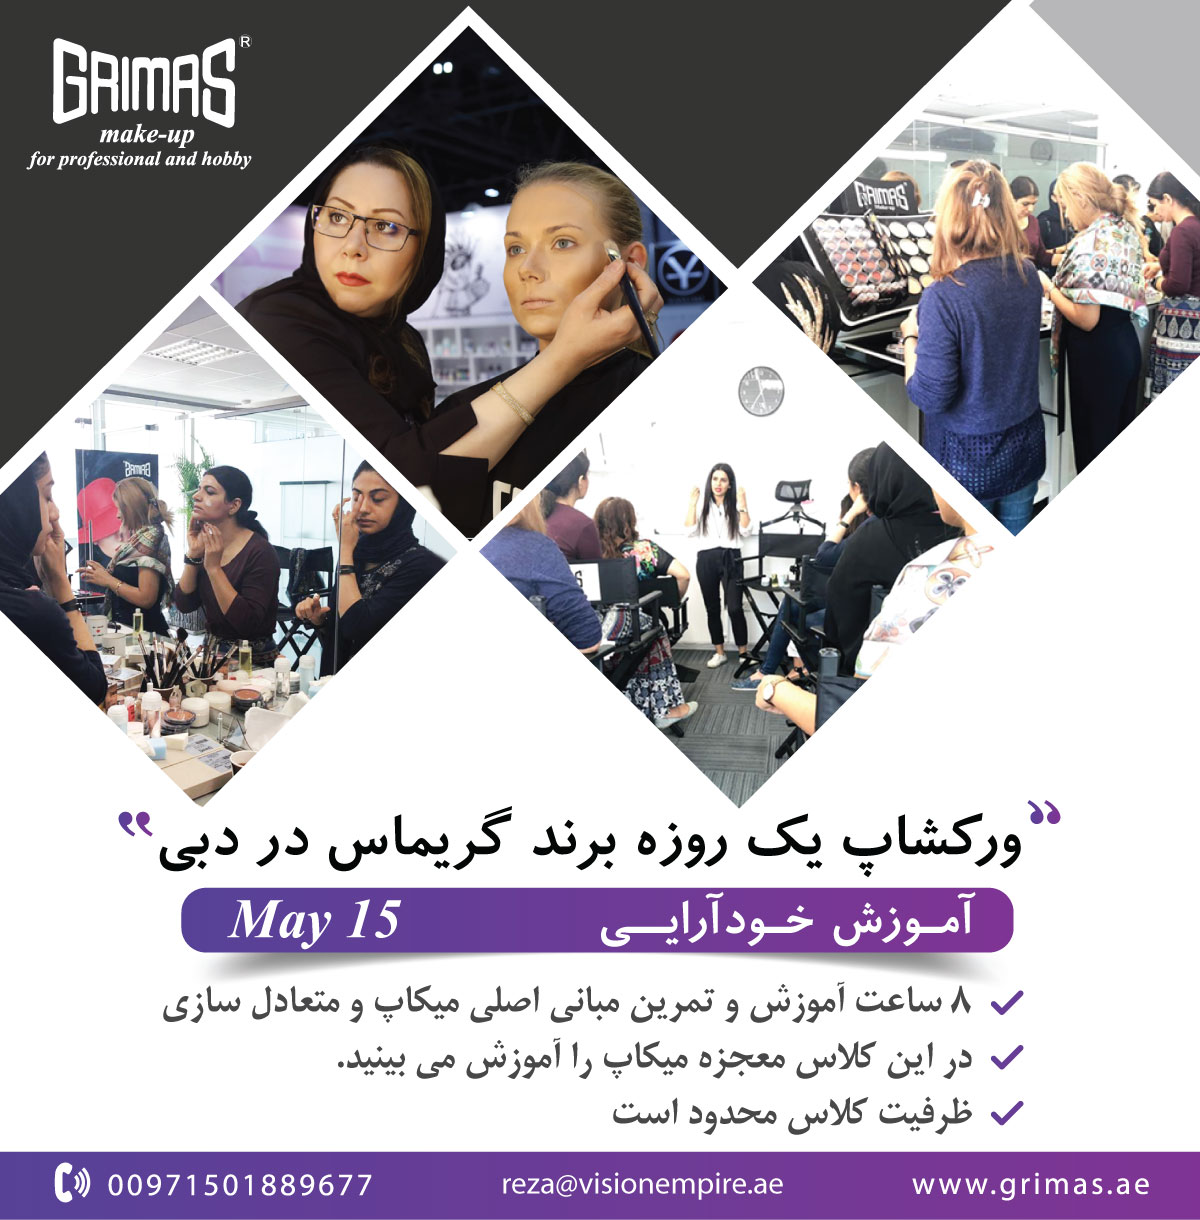 grimas-15-may-iran